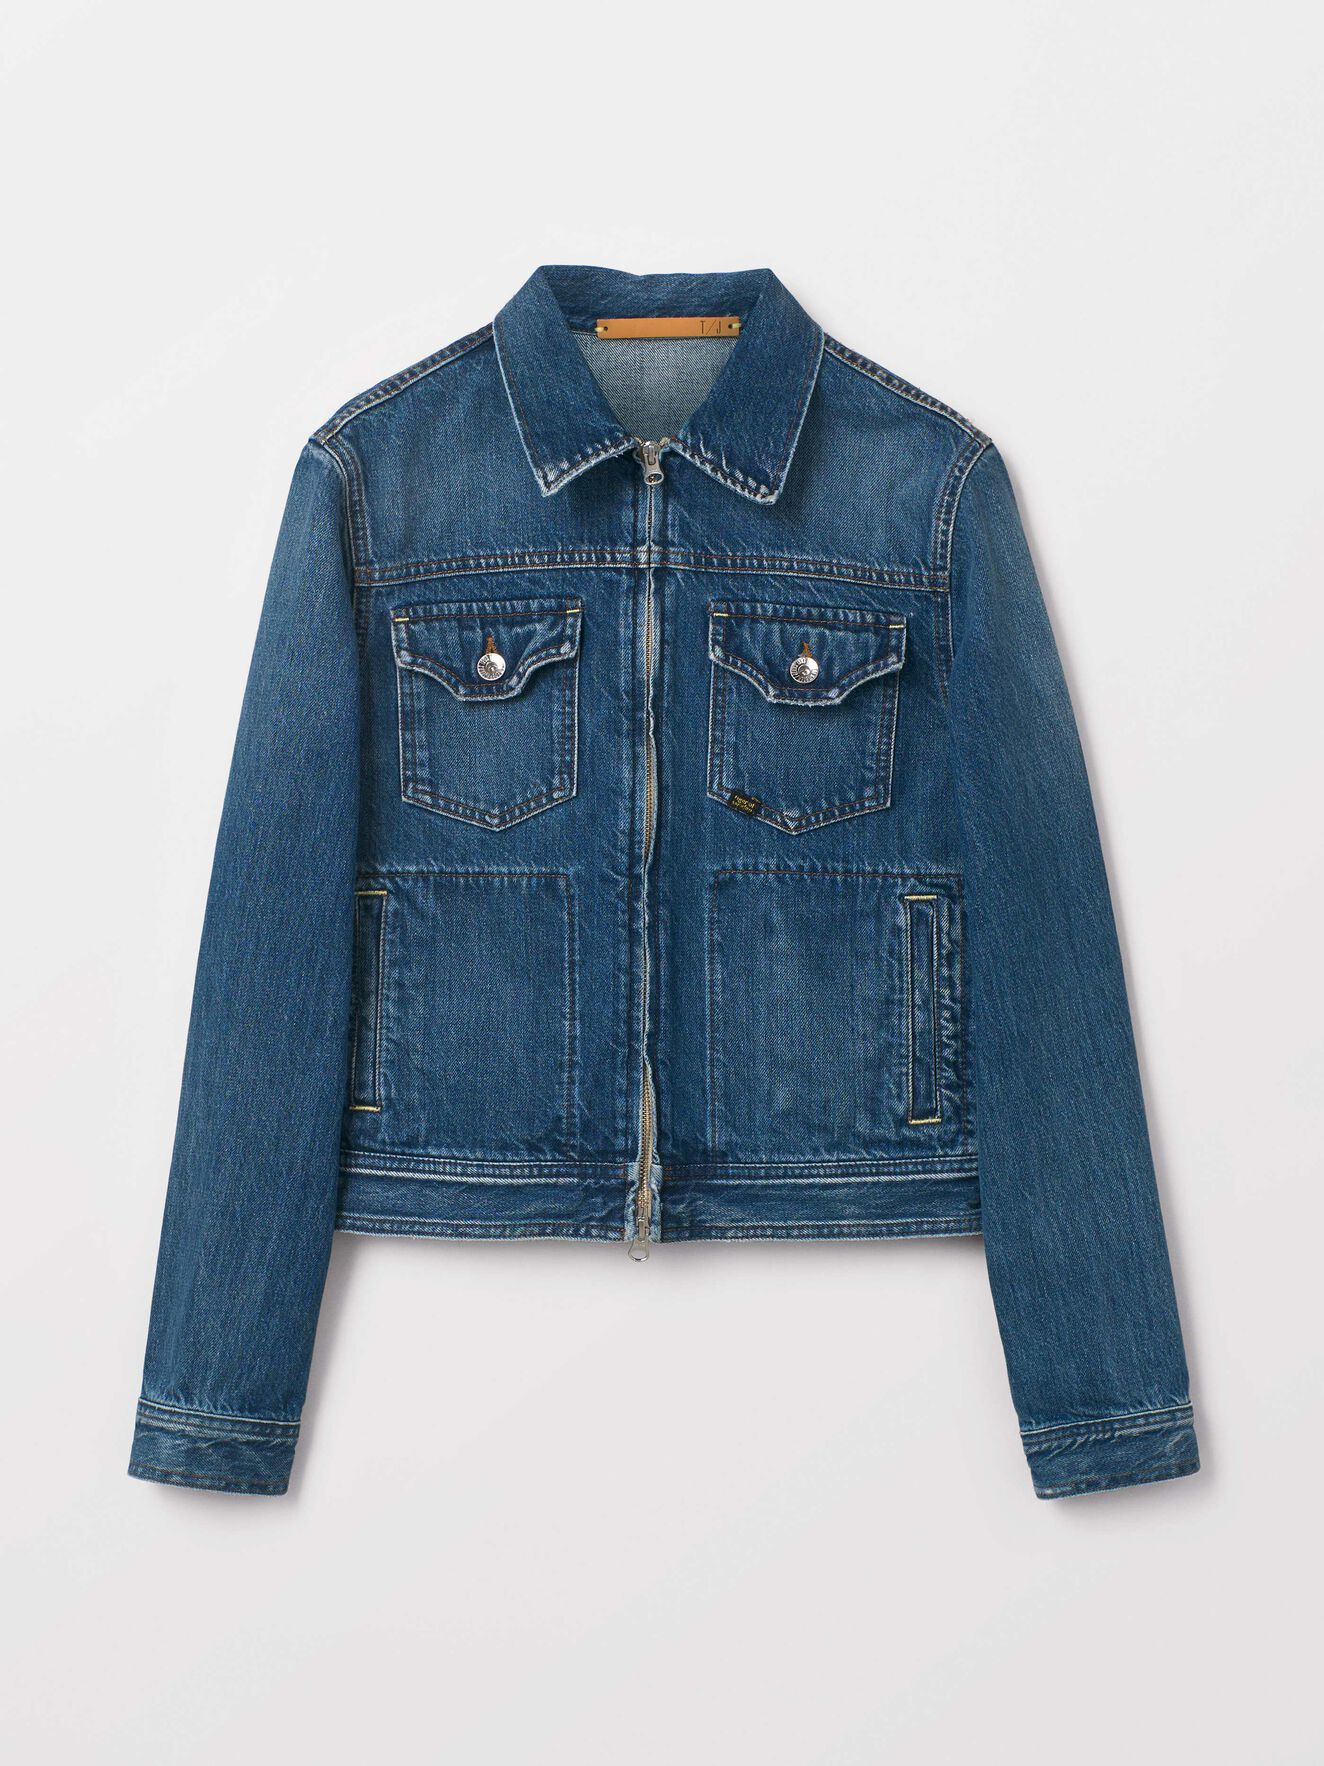 Peel Jacket in Dust blue from Tiger of Sweden